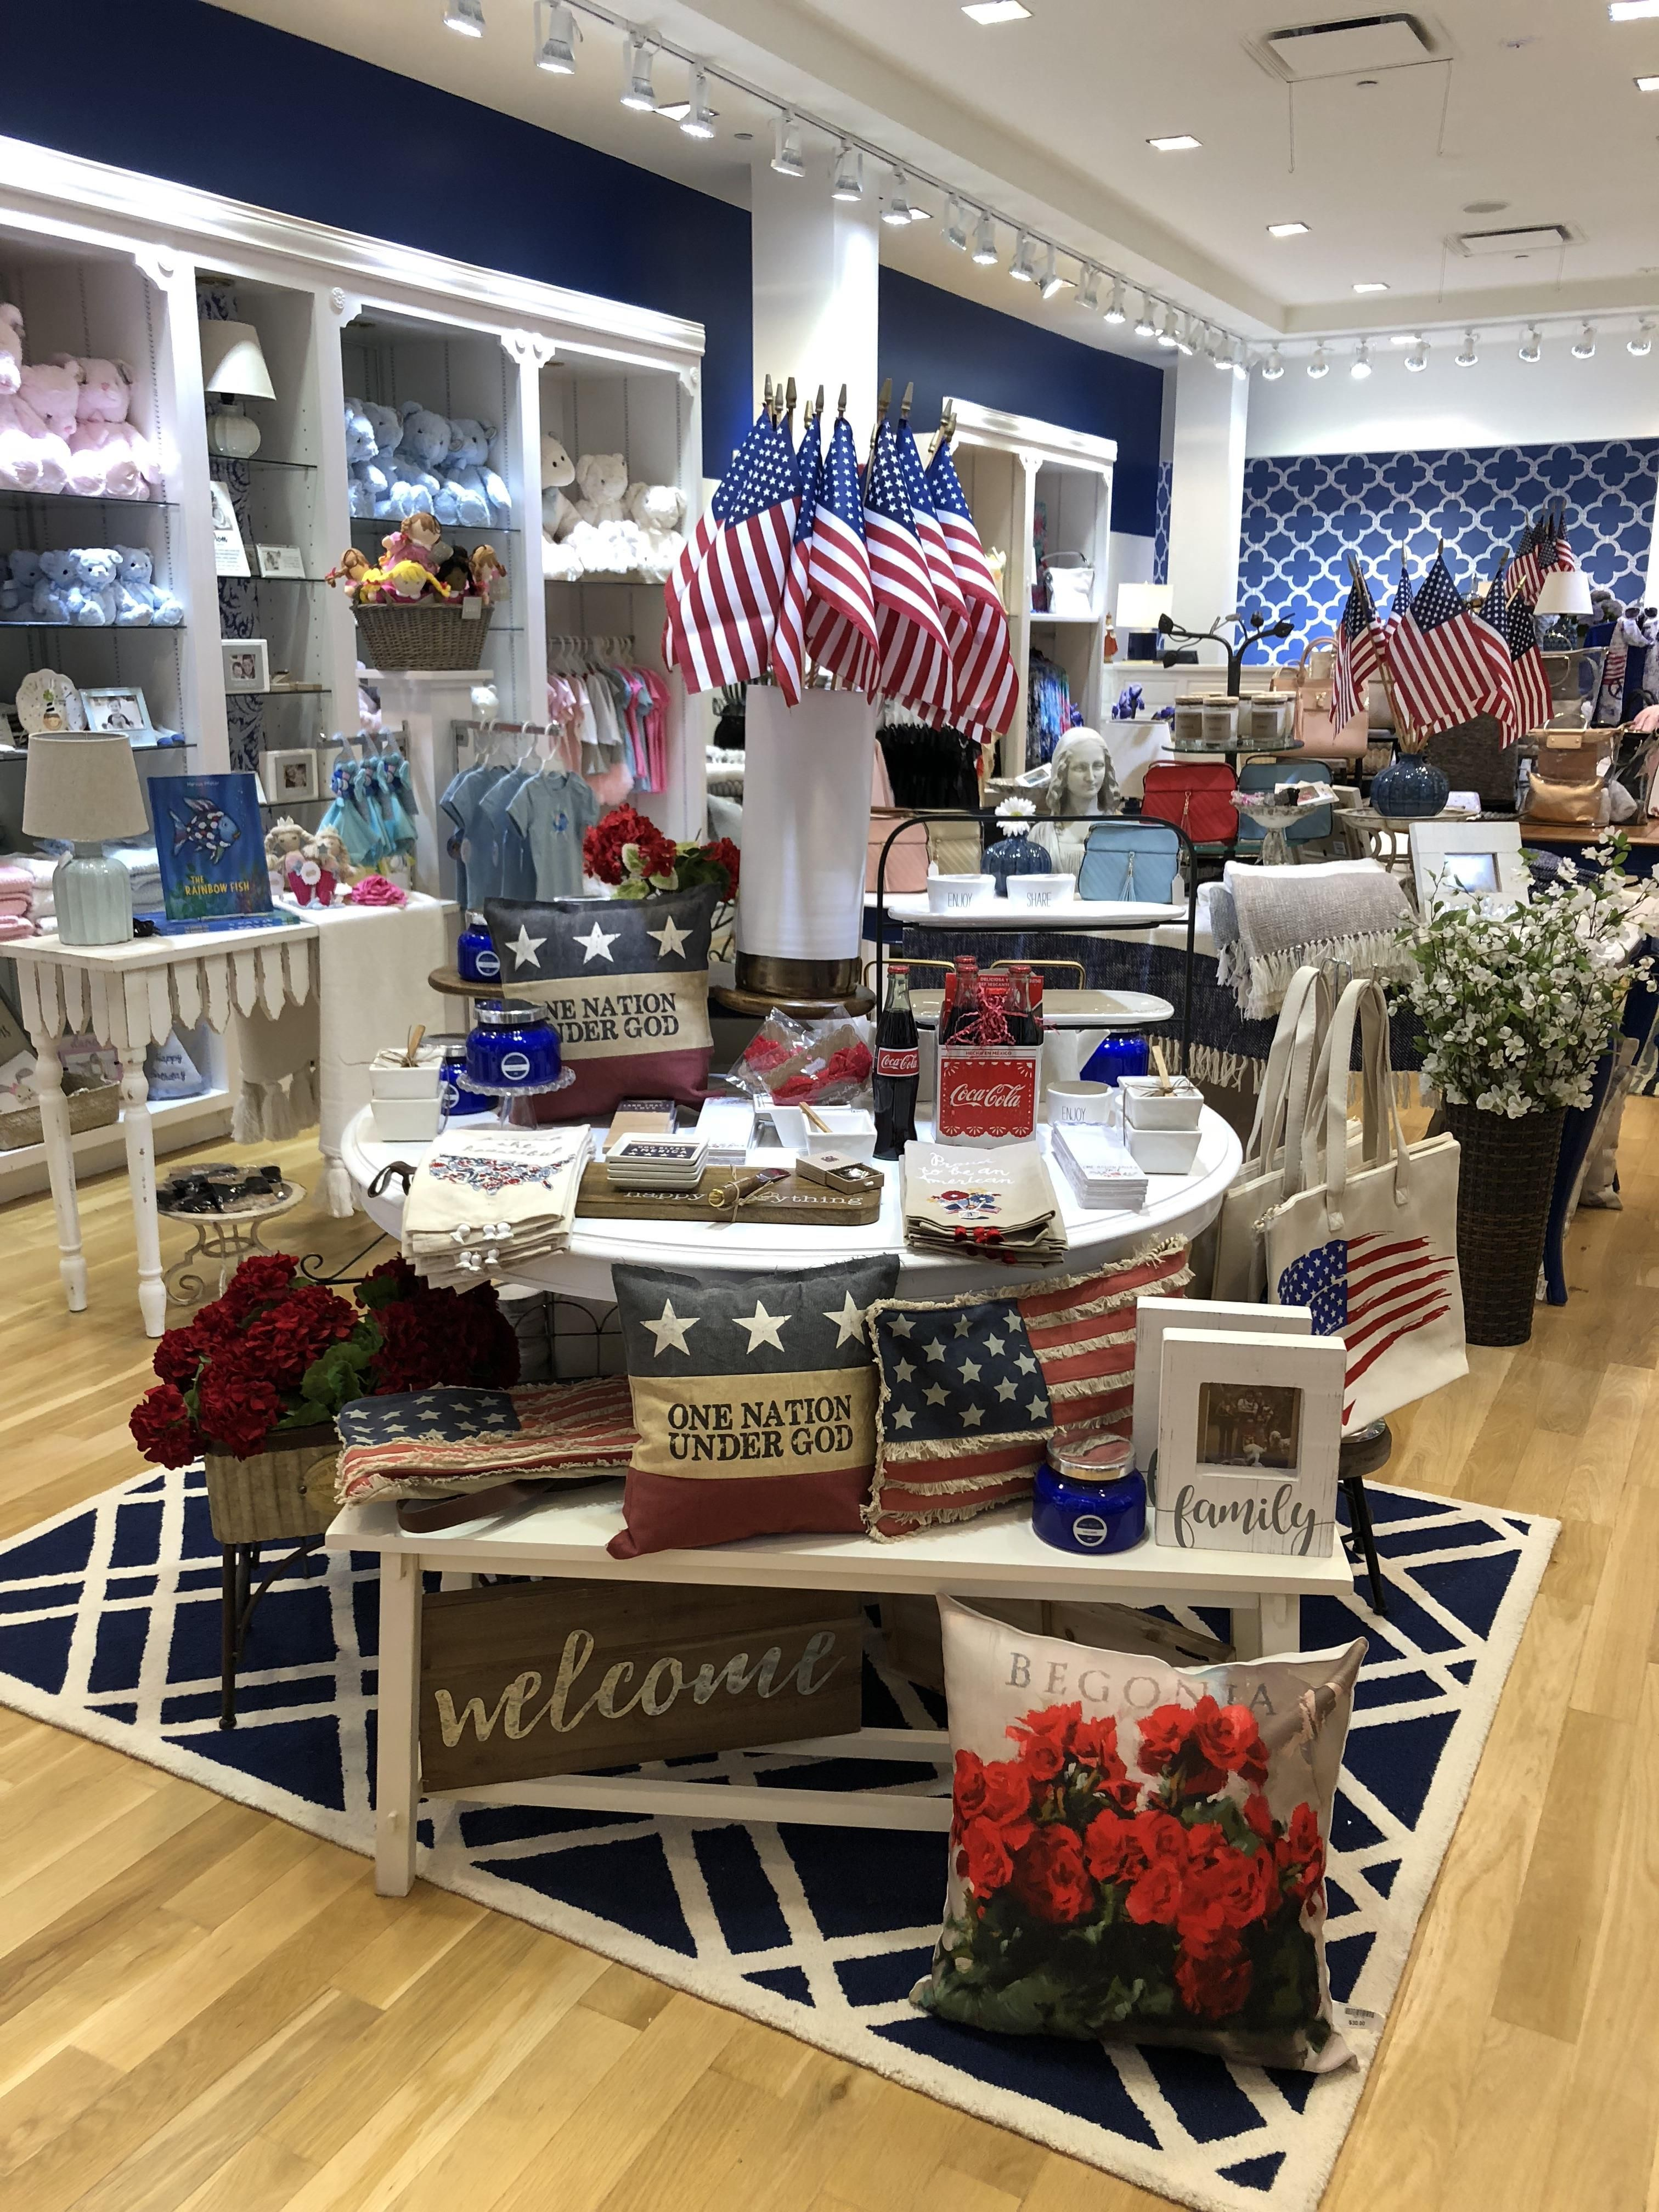 Visit our new boutique at Orland Park Crossing - opening Saturday, June 9, 2018 at 10 a.m.